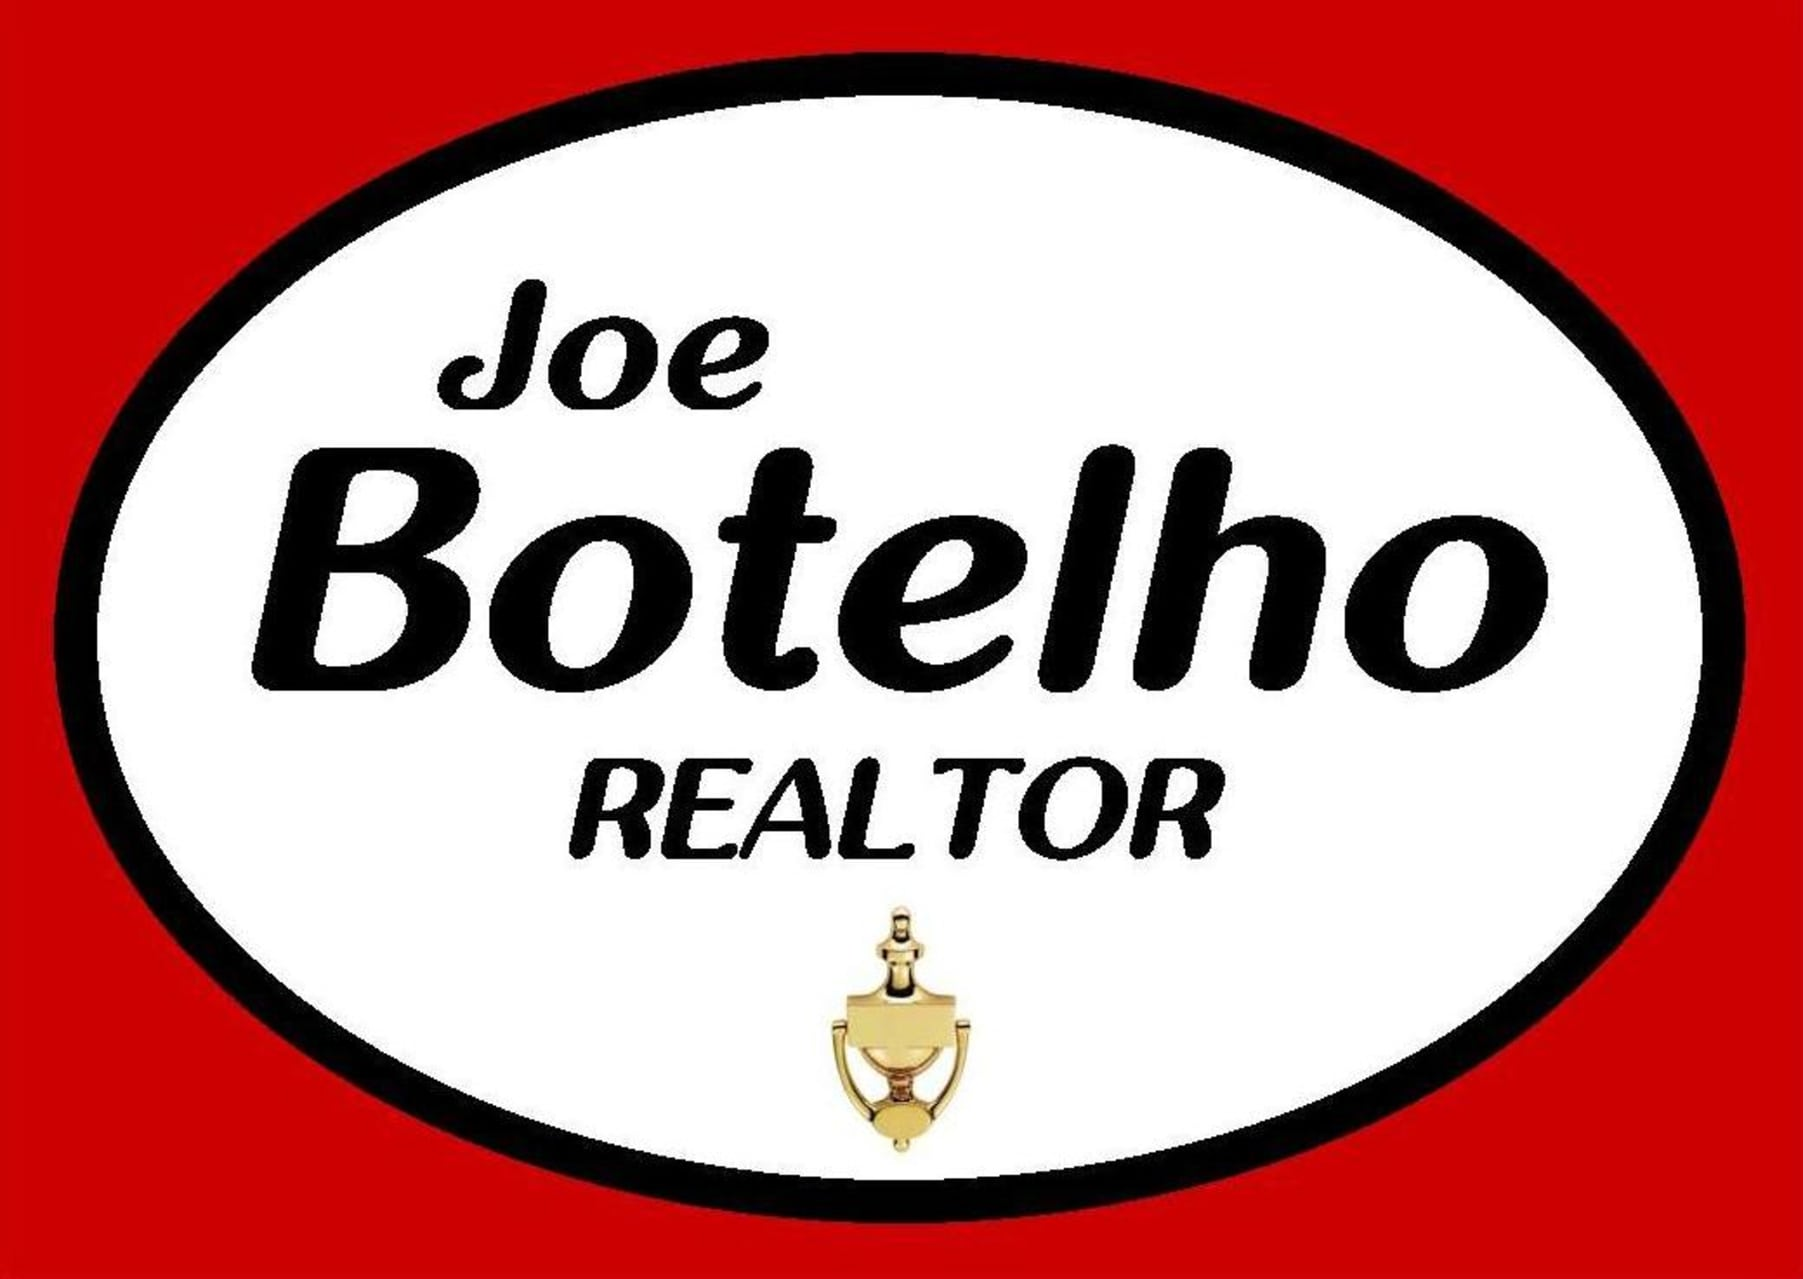 Residential And Commercial Real Estate Sales And Home Services